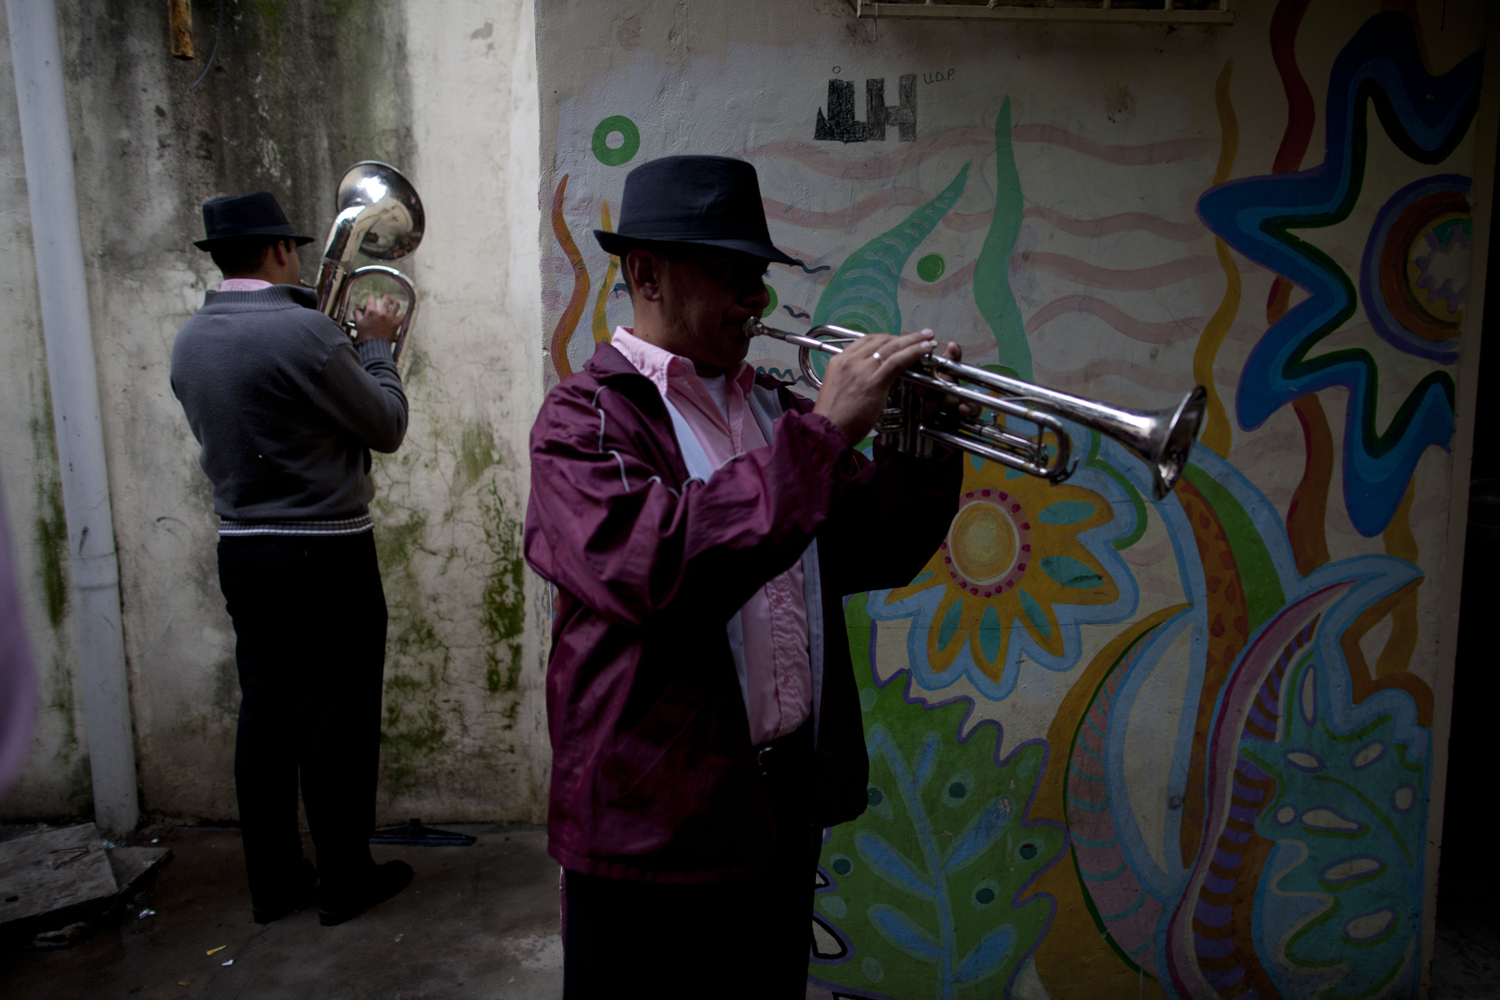 May 11, 2014. Two men rehearse before performing at a procession during the 40th anniversary of the assassination of priest Carlos Mugica at the  31  slum in Buenos Aires, Argentina.